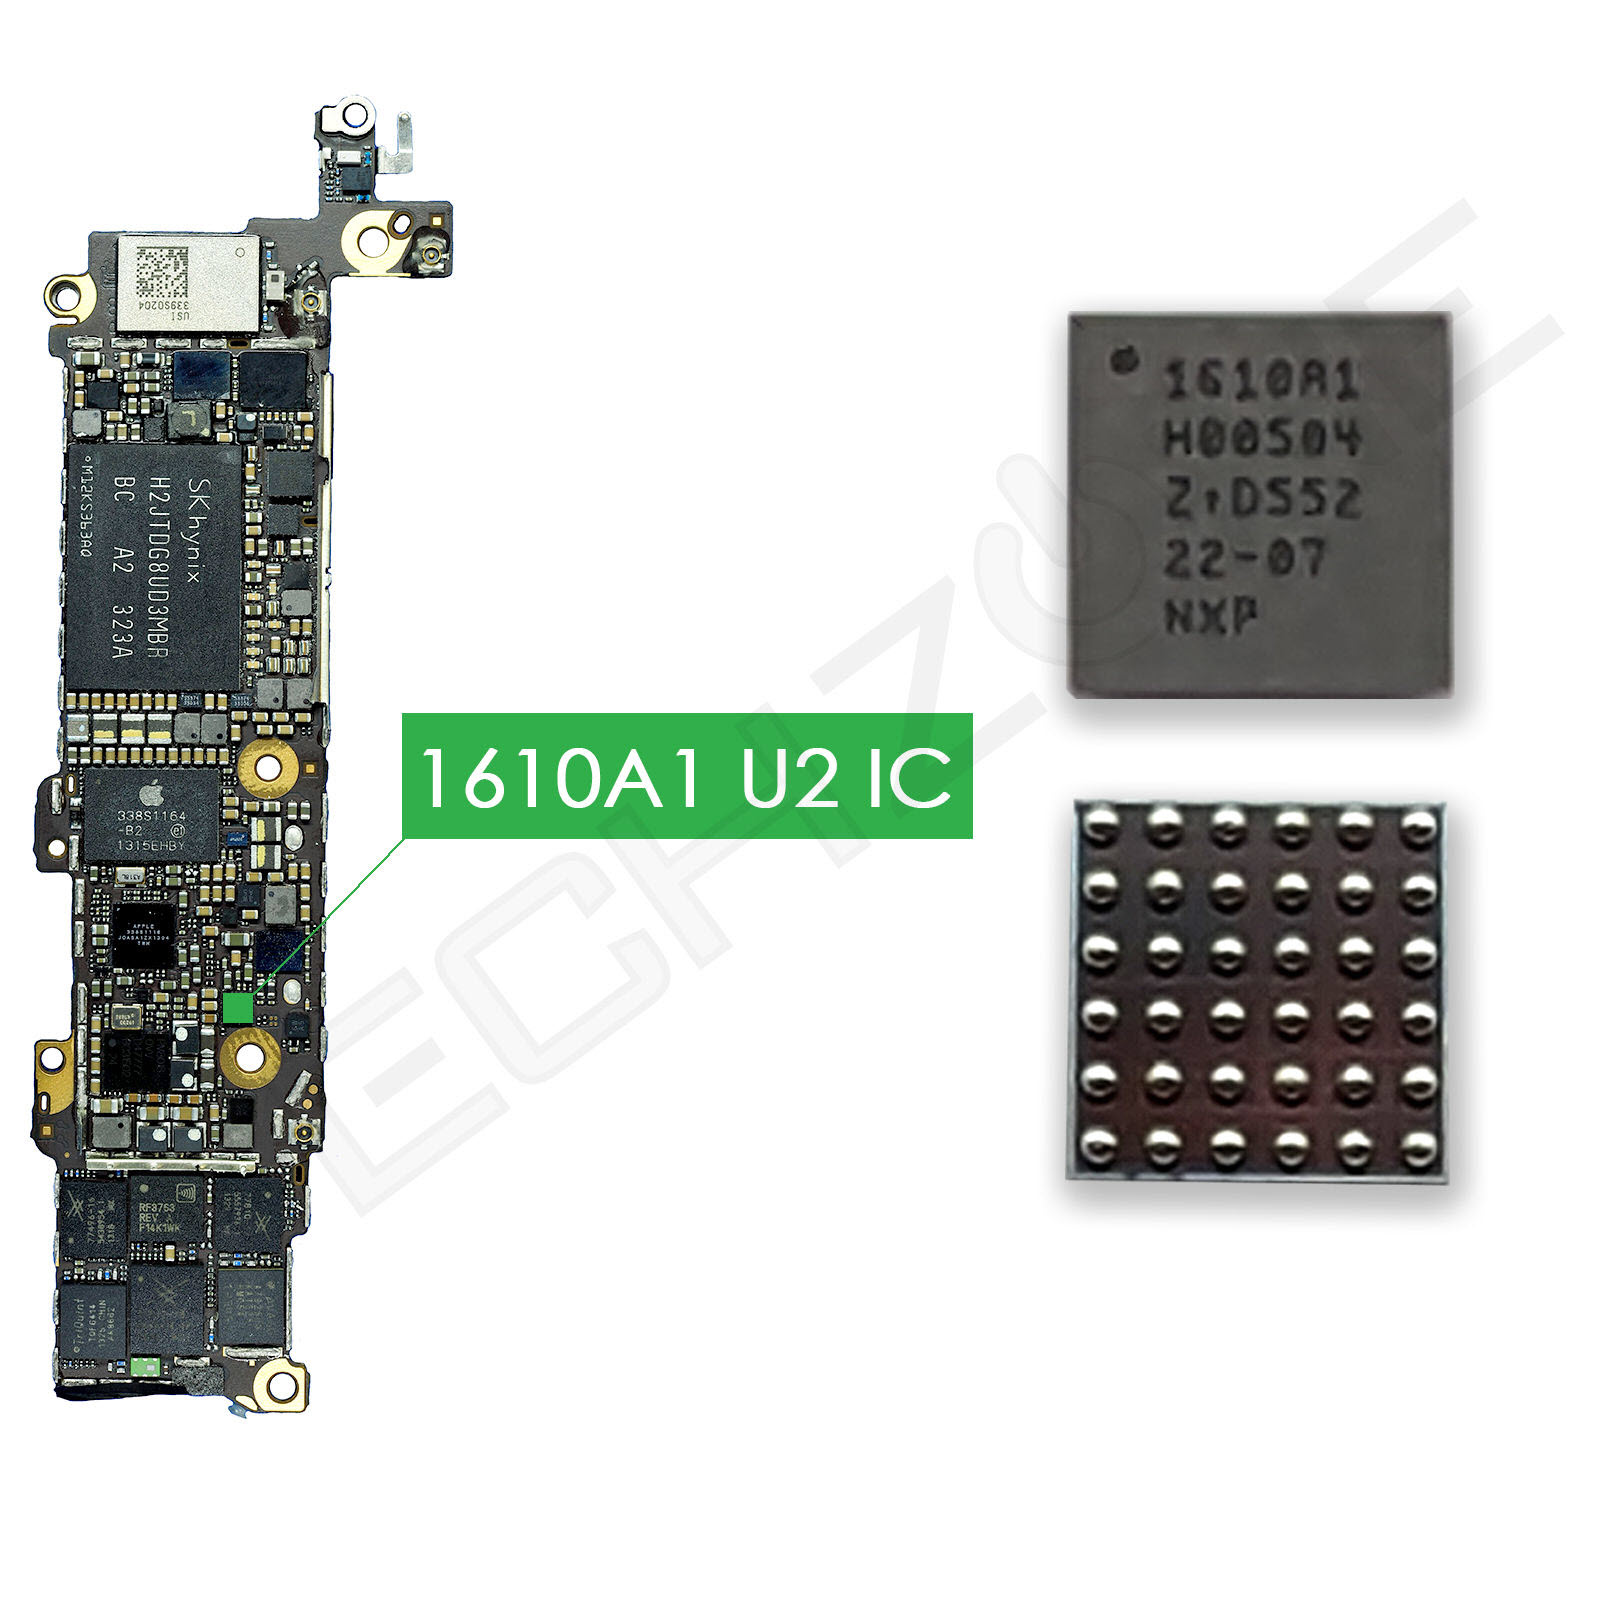 U2 CHARGING IC IPHONE 5C 5S (1610A1)